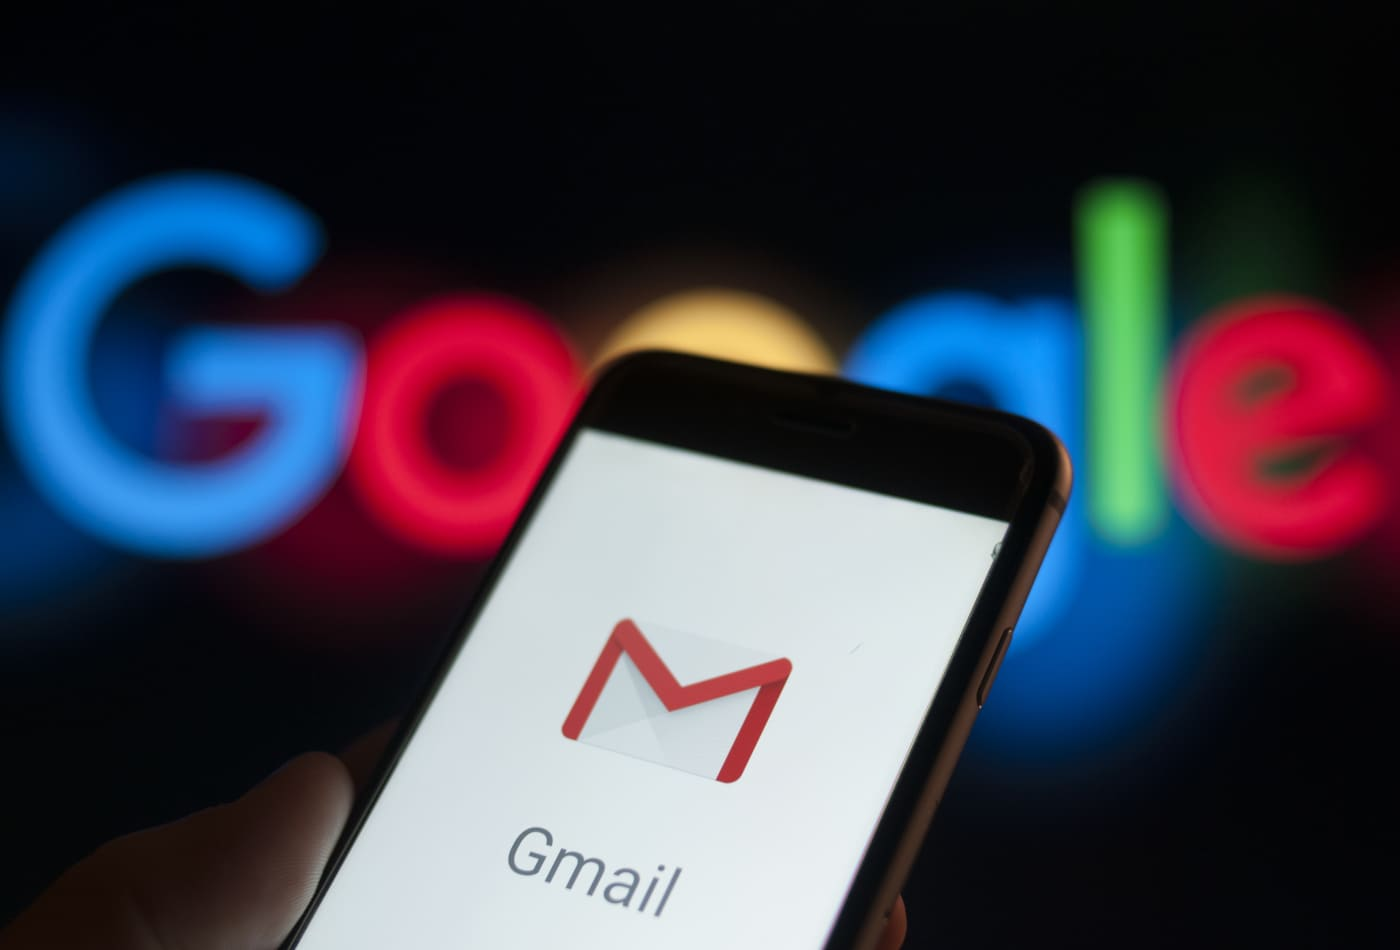 Google suffers widespread outage taking YouTube, Gmail and Drive apps offline